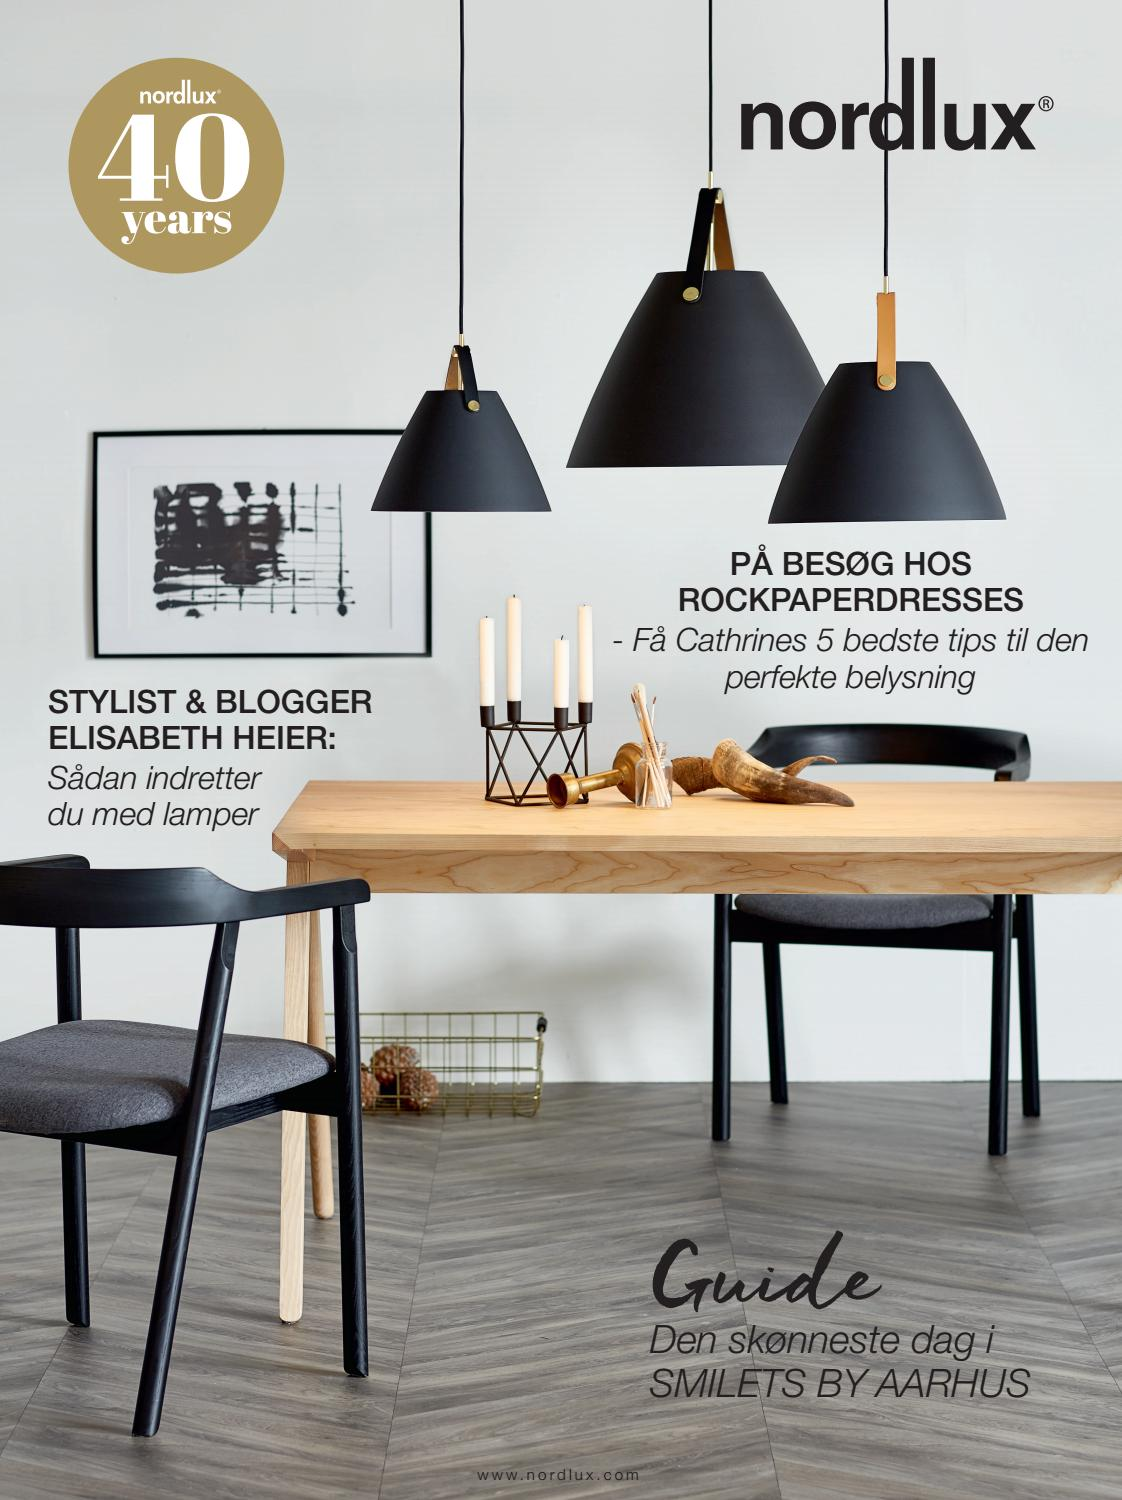 Nordlux Lampen Design For The People Magazine 2017 2018 Danish By Nordlux A S Issuu